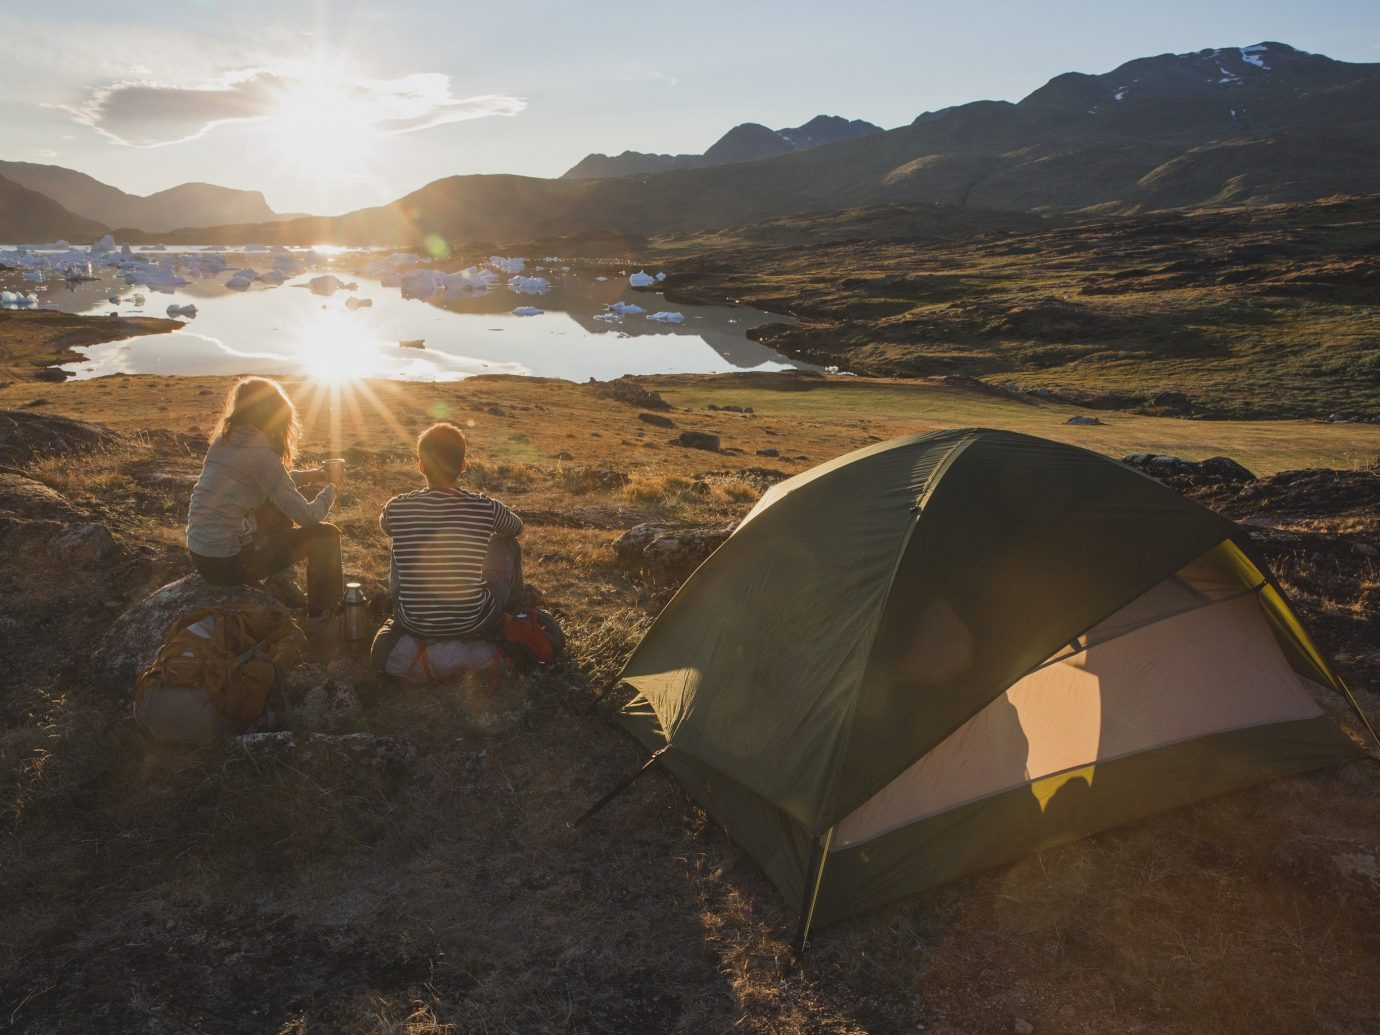 Travel Tips sky outdoor mountain ground mountainous landforms atmospheric phenomenon wilderness tent morning rock hill outdoor object landscape Sea Coast sunlight terrain valley sandy